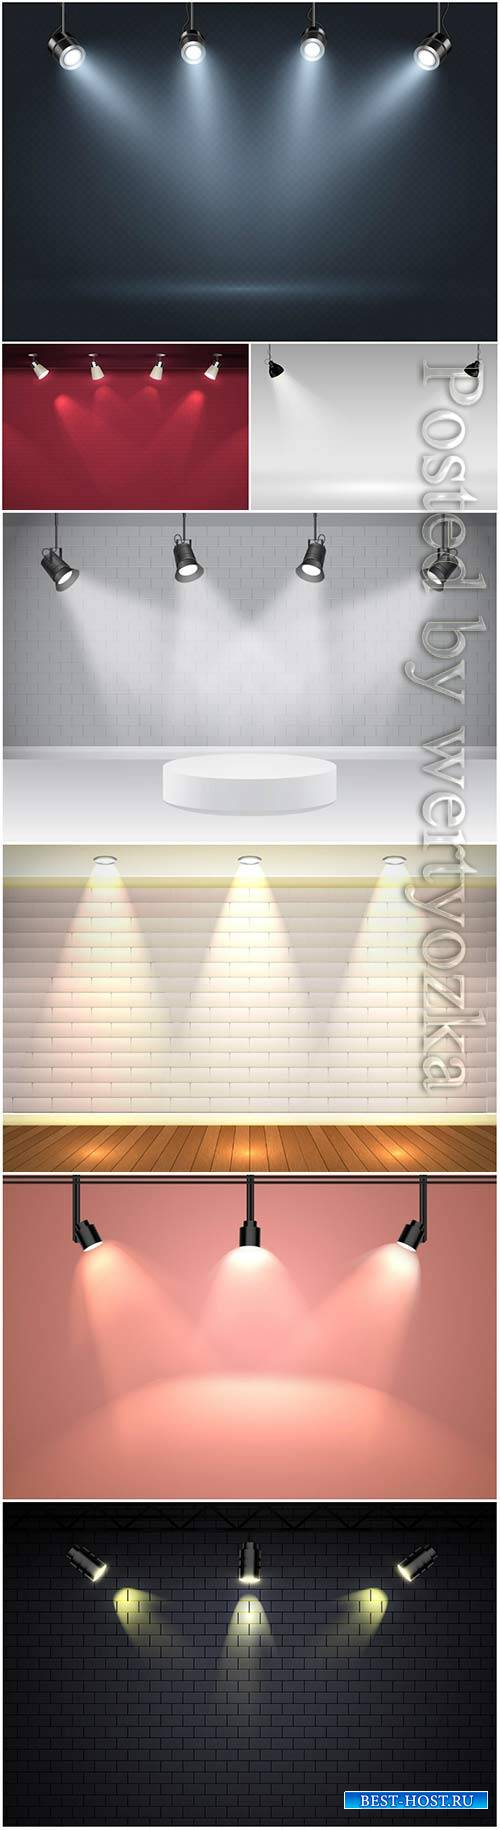 Spot lights background vector illustration